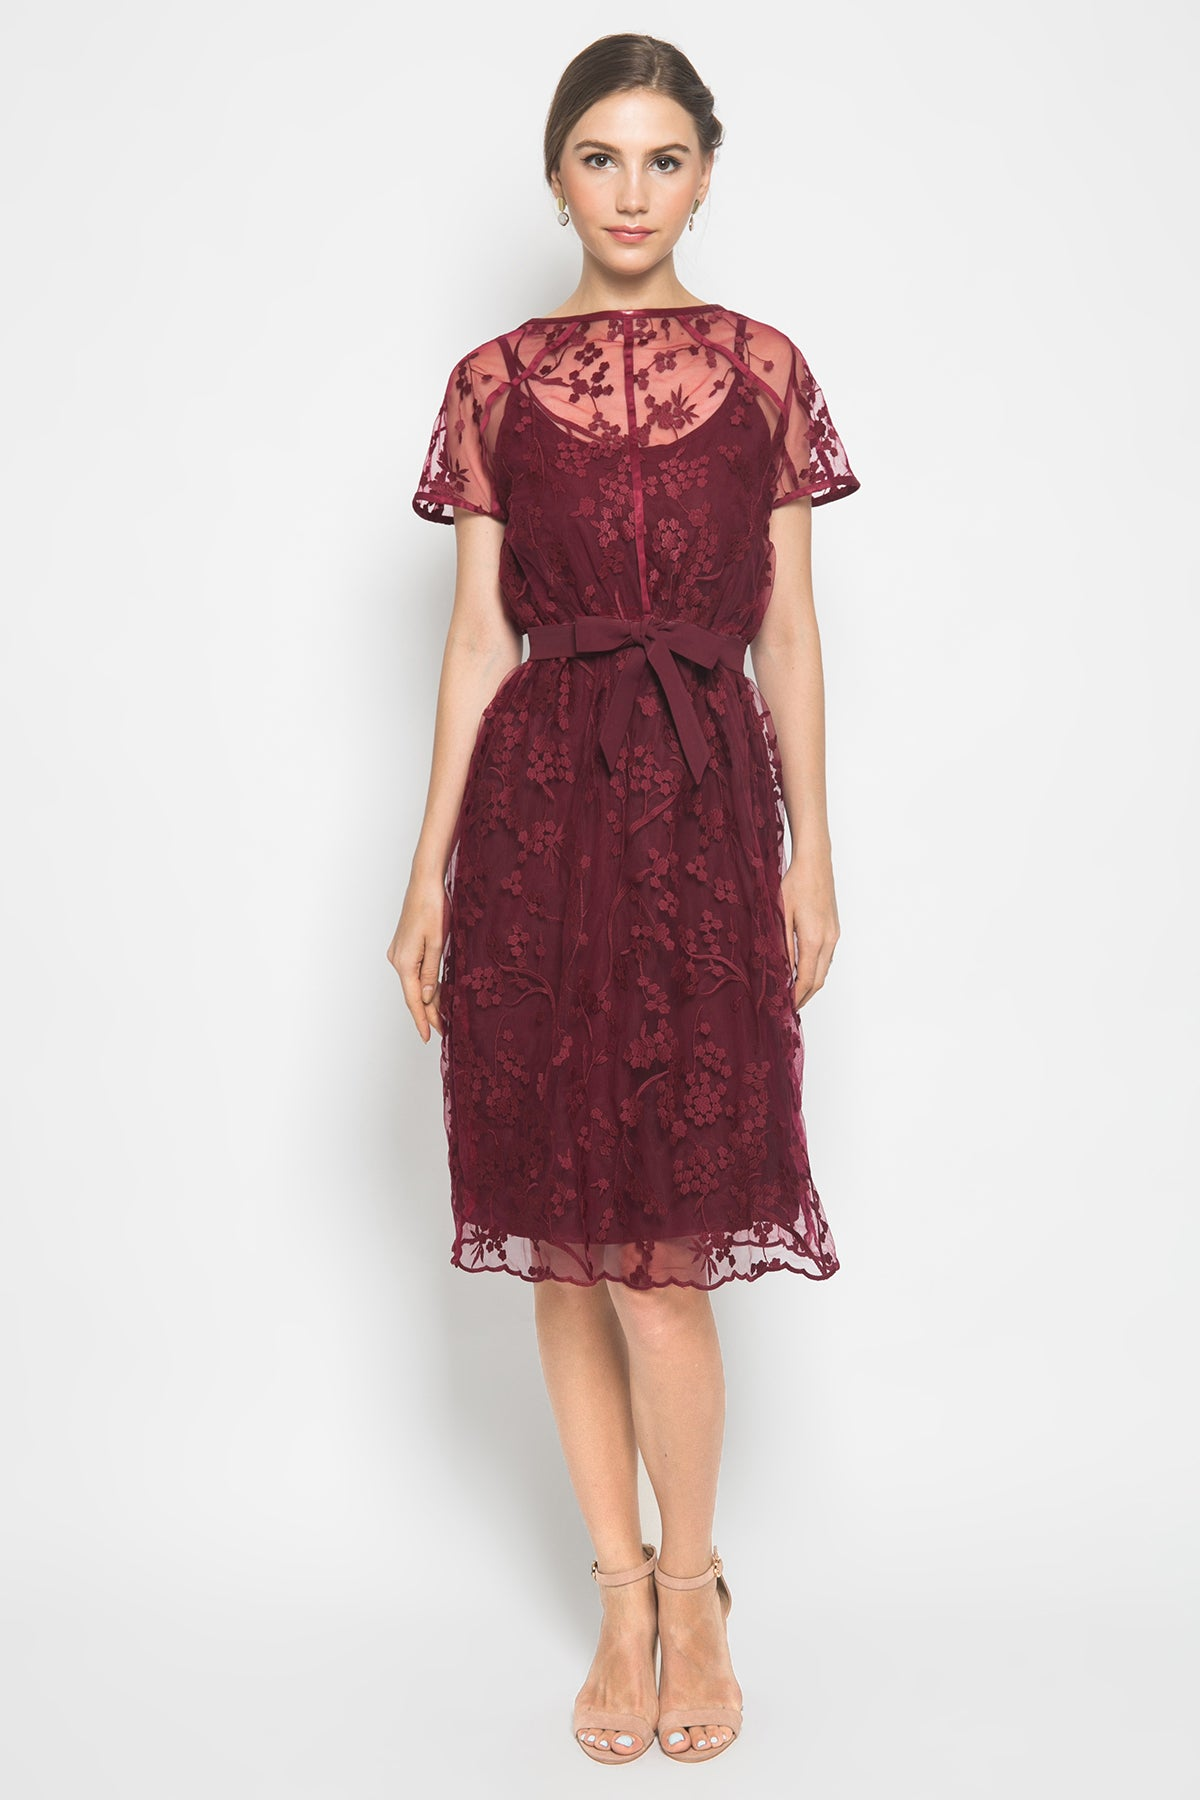 Exa Dress in Maroon